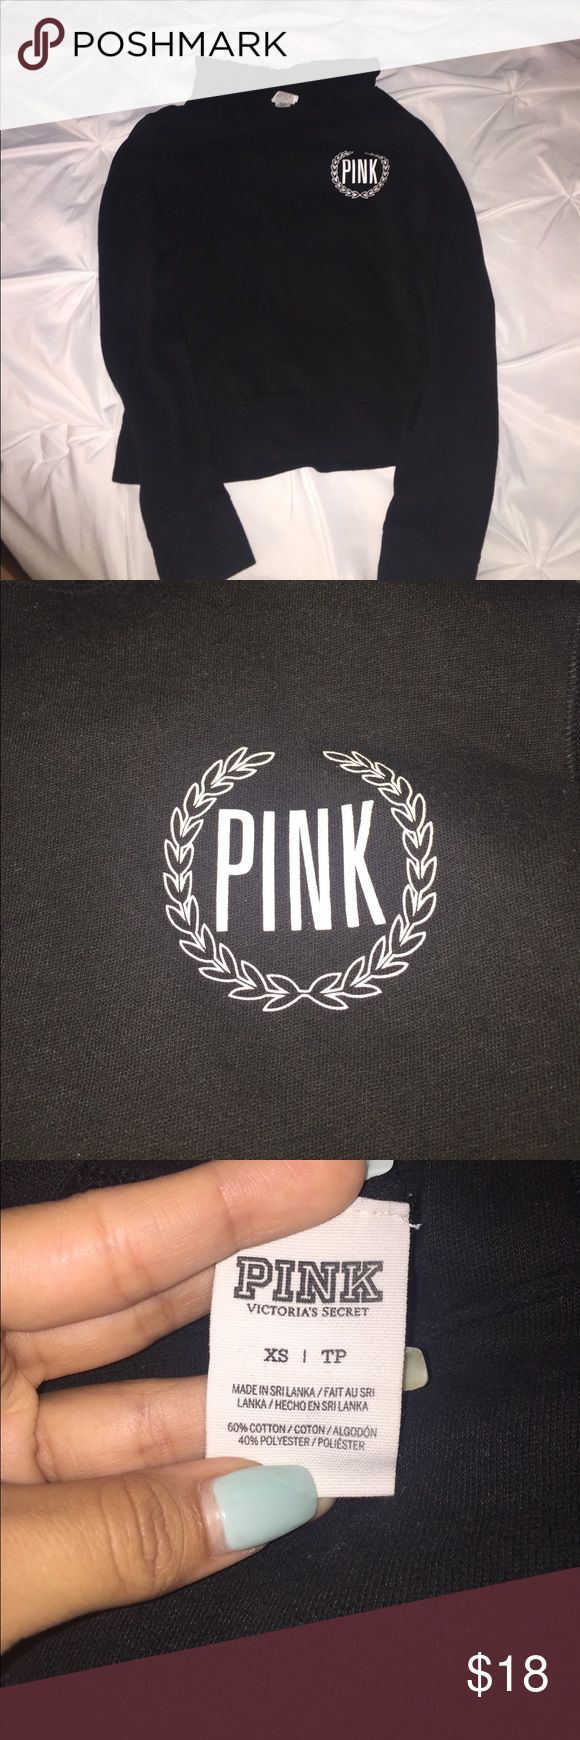 PINK Victoria's Secret Black Hooded Sweatshirt Hi gorgeous people, so i'm selling this sweatshirt just because I simply don't wear it anymore and its really not my style. It has been gently worn but there are no signs of stains or anything. I purchased this a couple years back at the PINK store for about $40. PINK Victoria's Secret Sweaters Crew & Scoop Necks